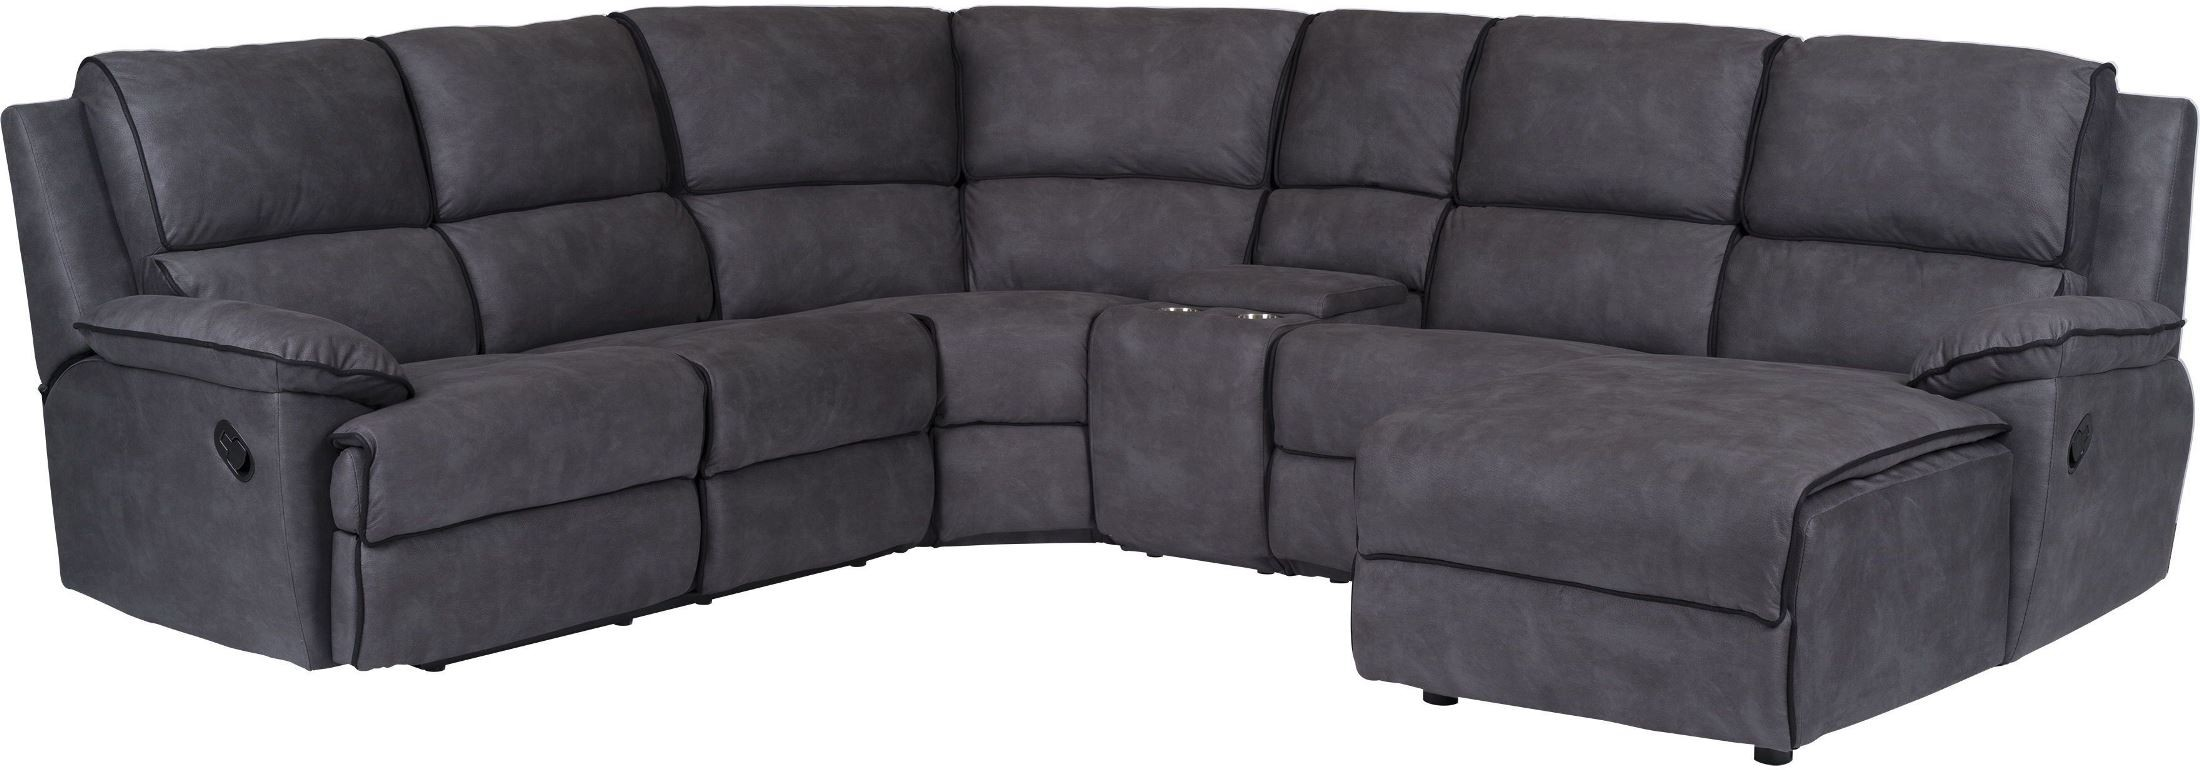 Neo Grey Sectional  sc 1 st  Coleman Furniture : grey sectional - Sectionals, Sofas & Couches